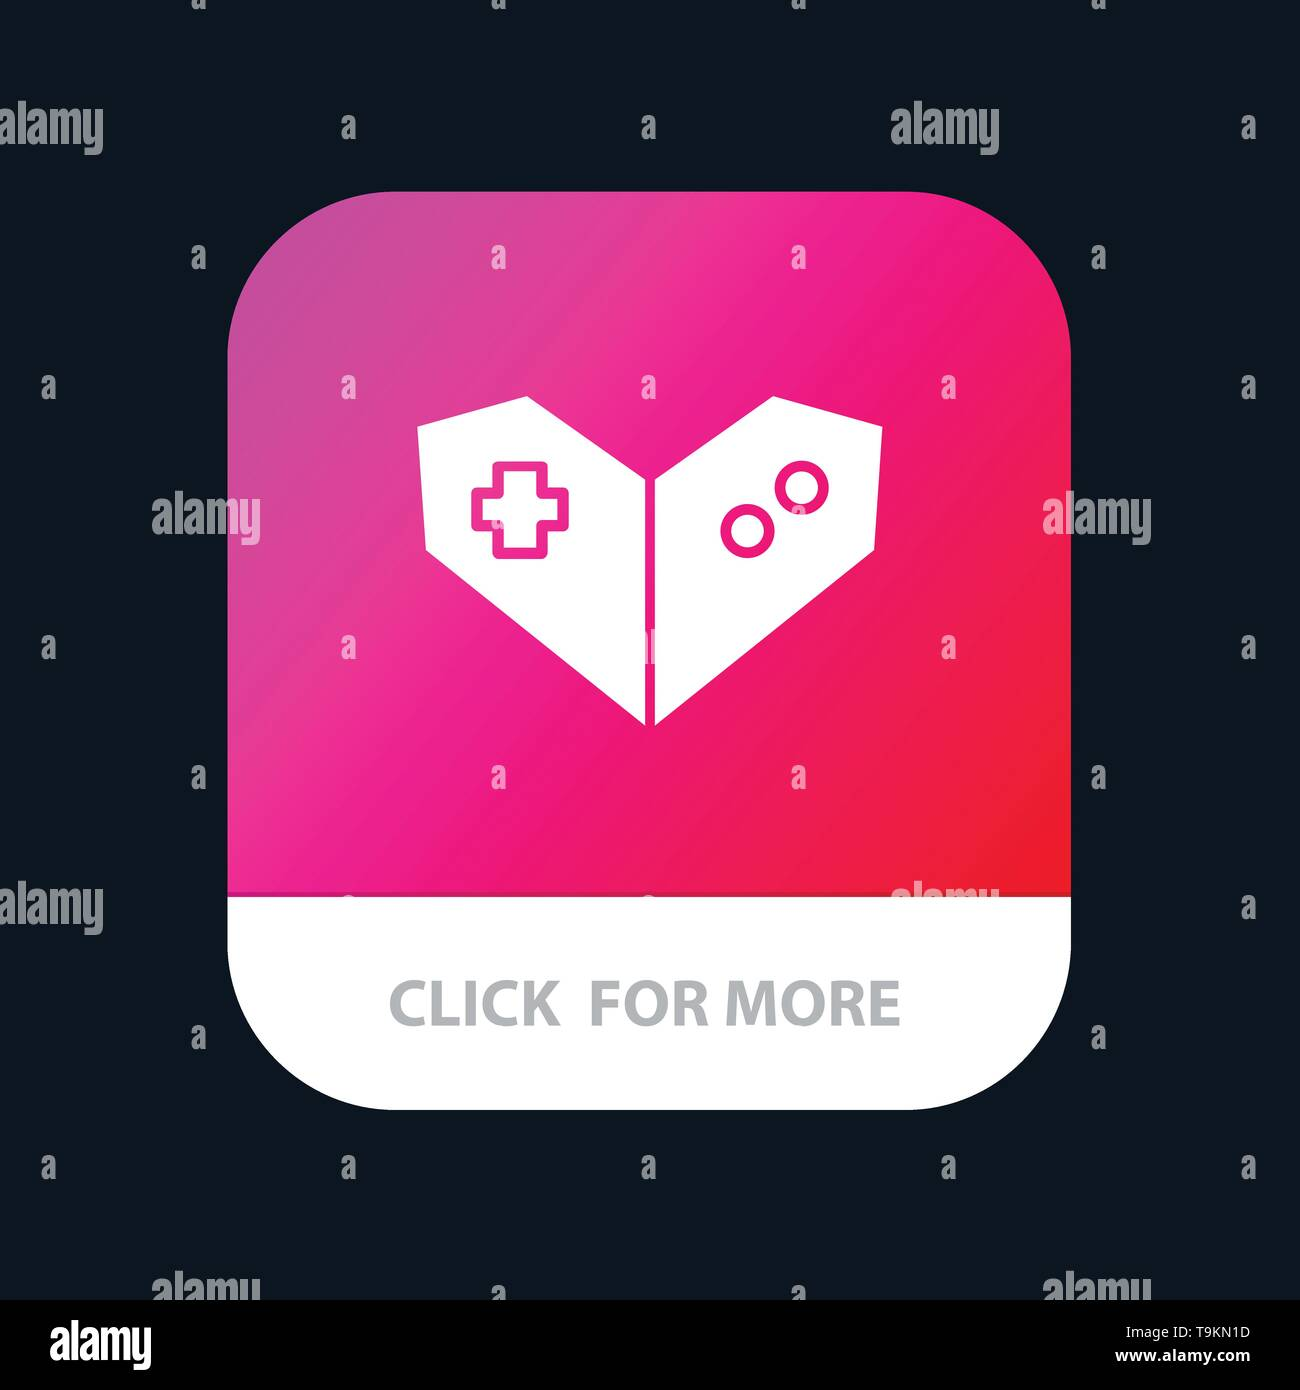 Gamepad, Videogame, PlayStation Mobile App Button. Android and IOS Glyph Version - Stock Image